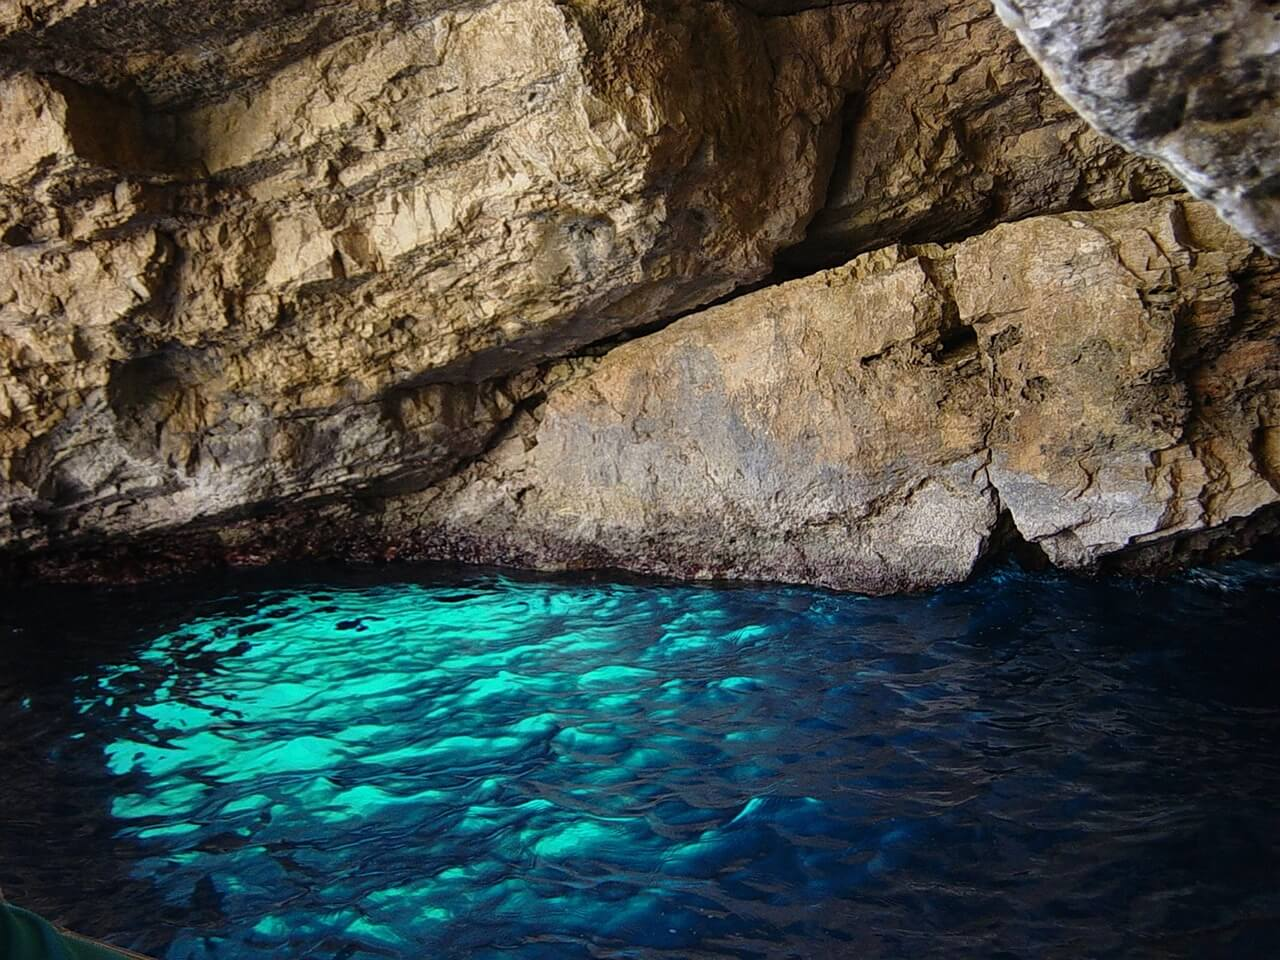 blue-grotto-590335_1280